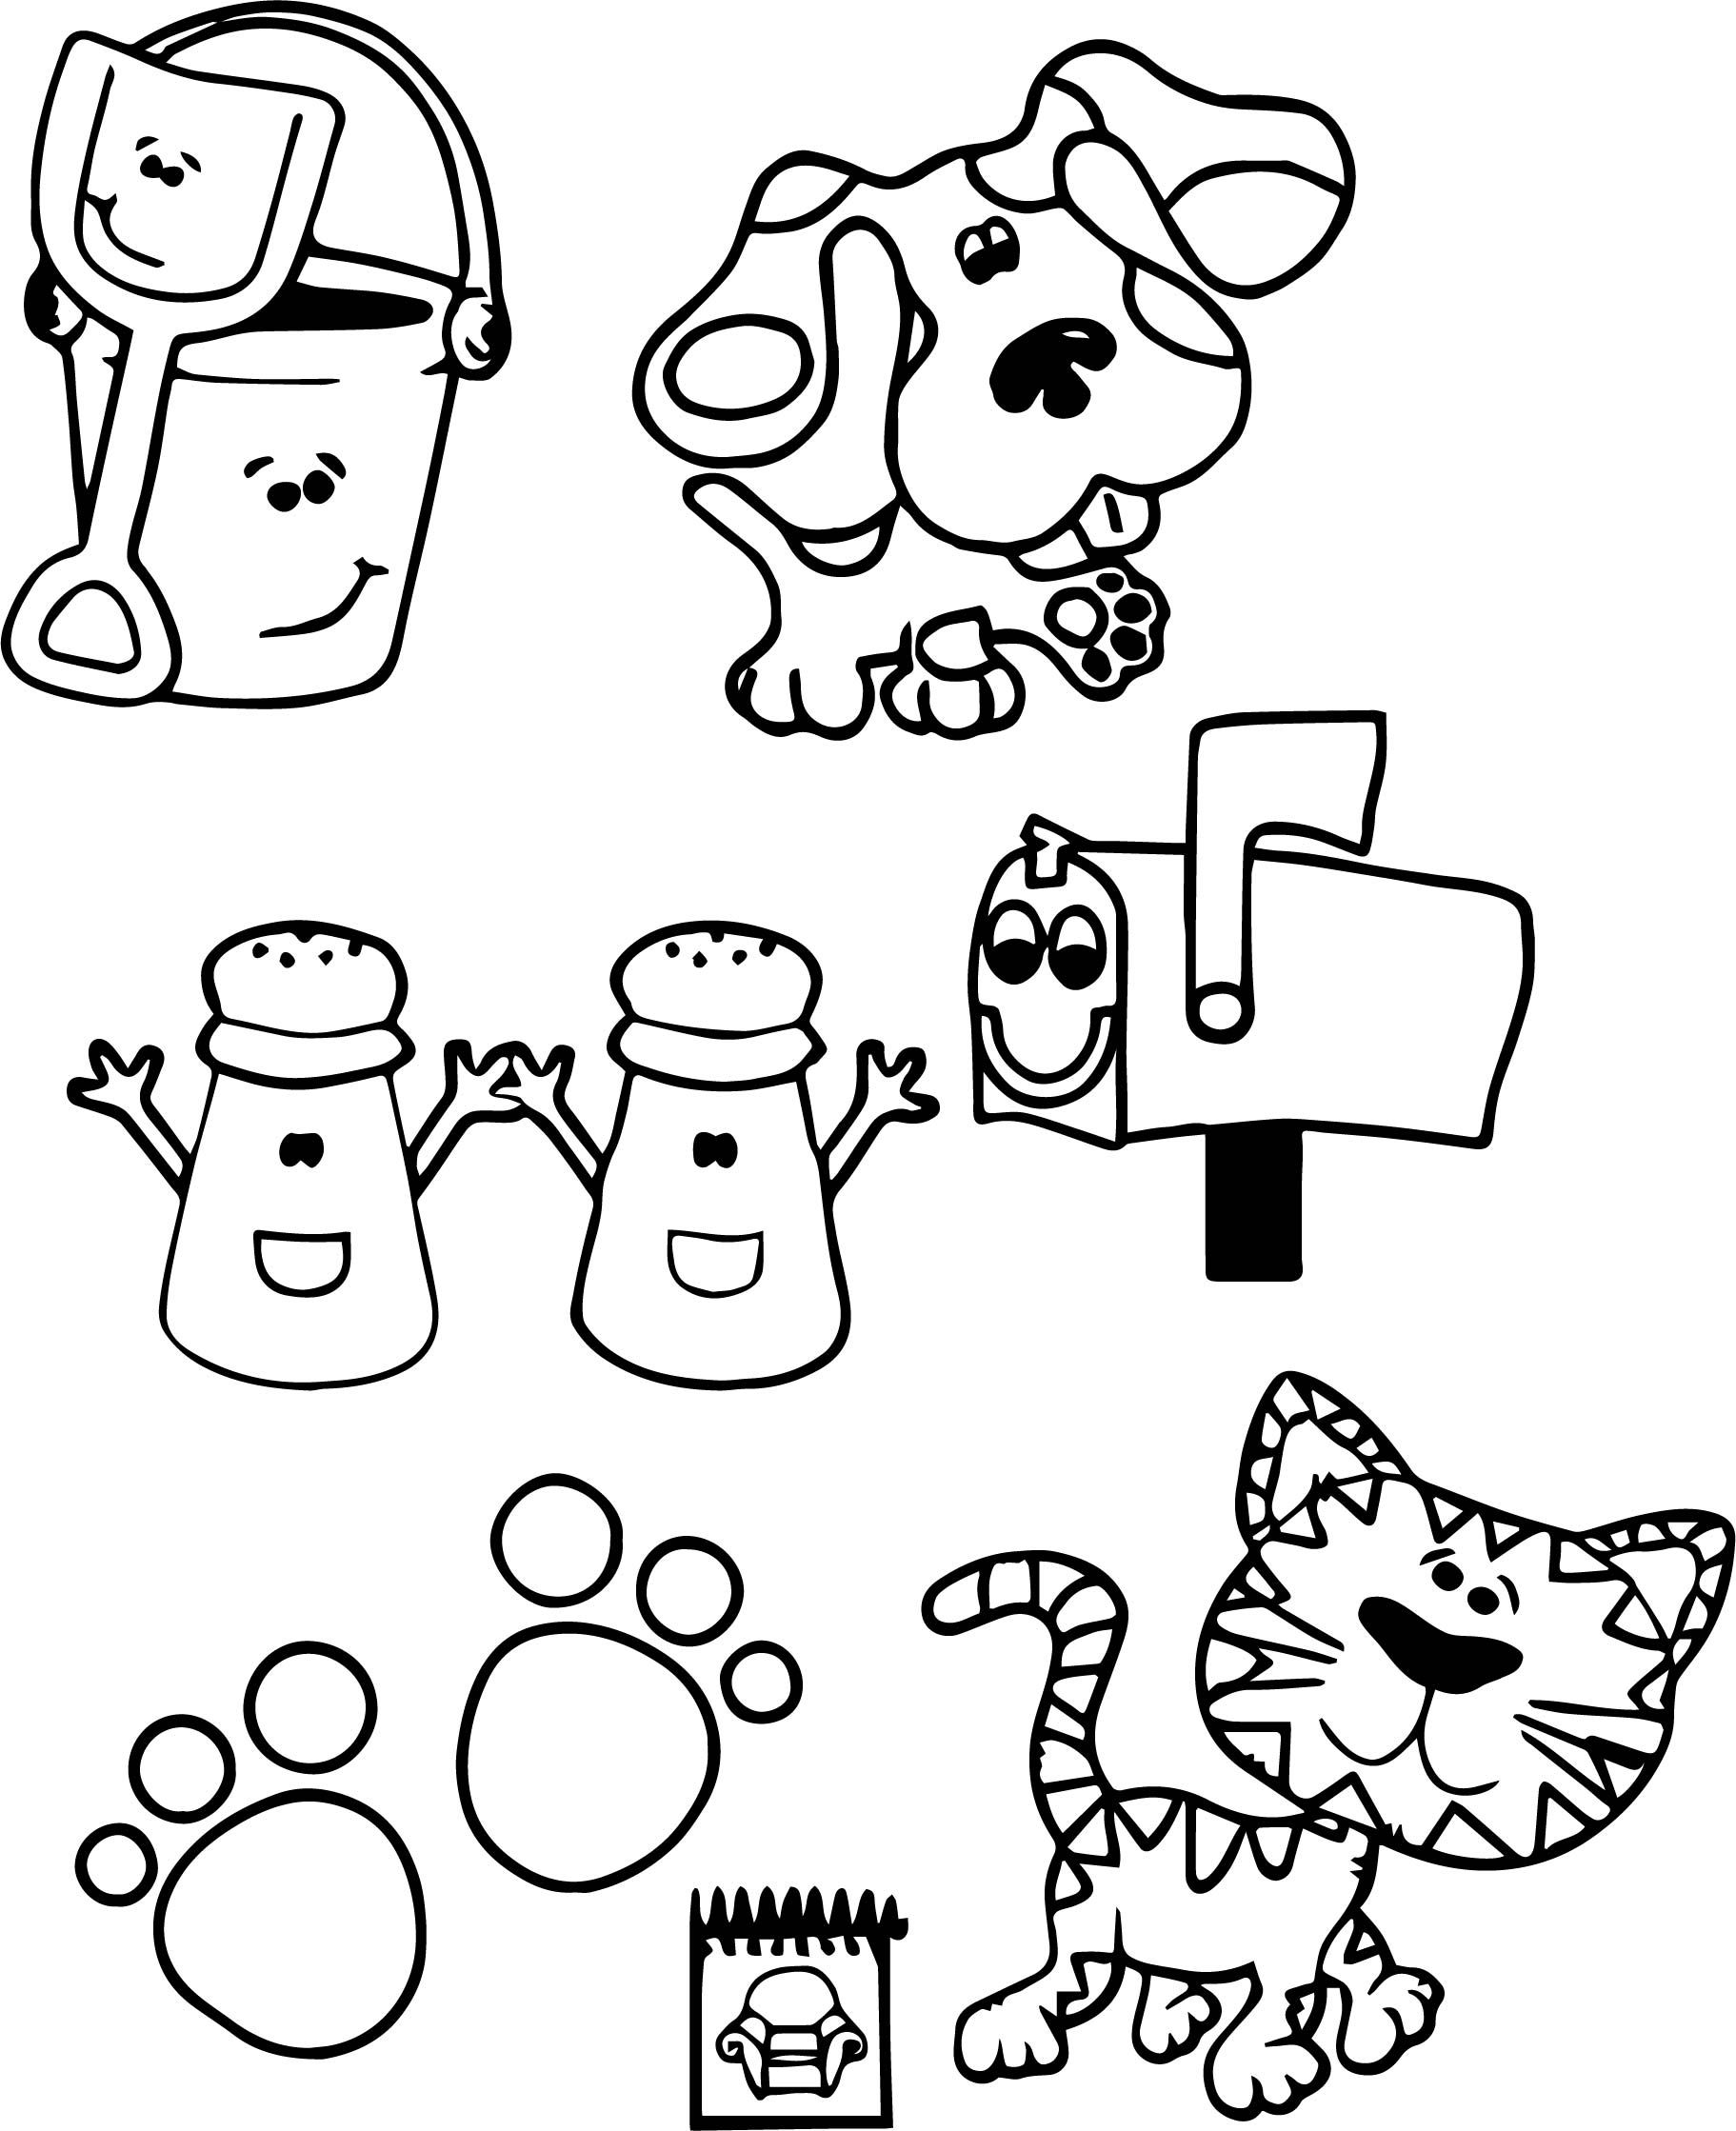 Free Printable Blues Clues Coloring Pages For Kids Nick Jr Coloring Pages Coloring Pages For Kids Free Coloring Pages